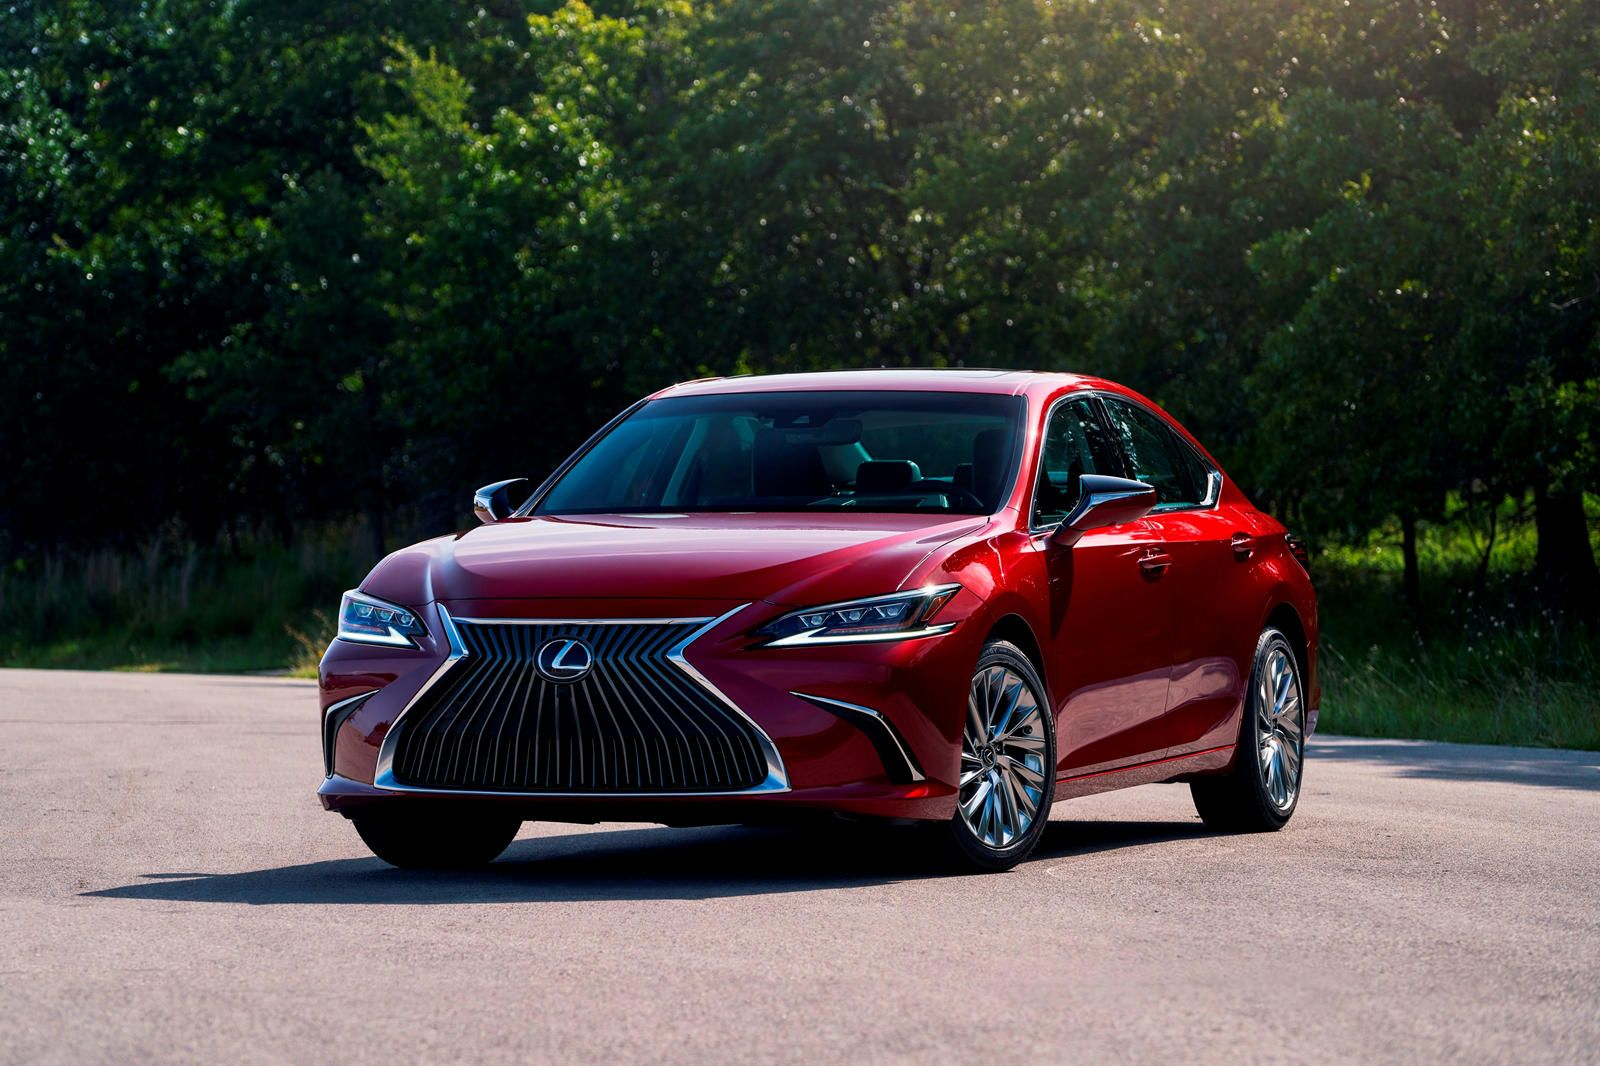 2021 Lexus Es First Look Review Luxury With More Attitude The Popular Luxury Sedan Receives A Much Needed Feature In 2020 Lexus Es Lexus Sedan